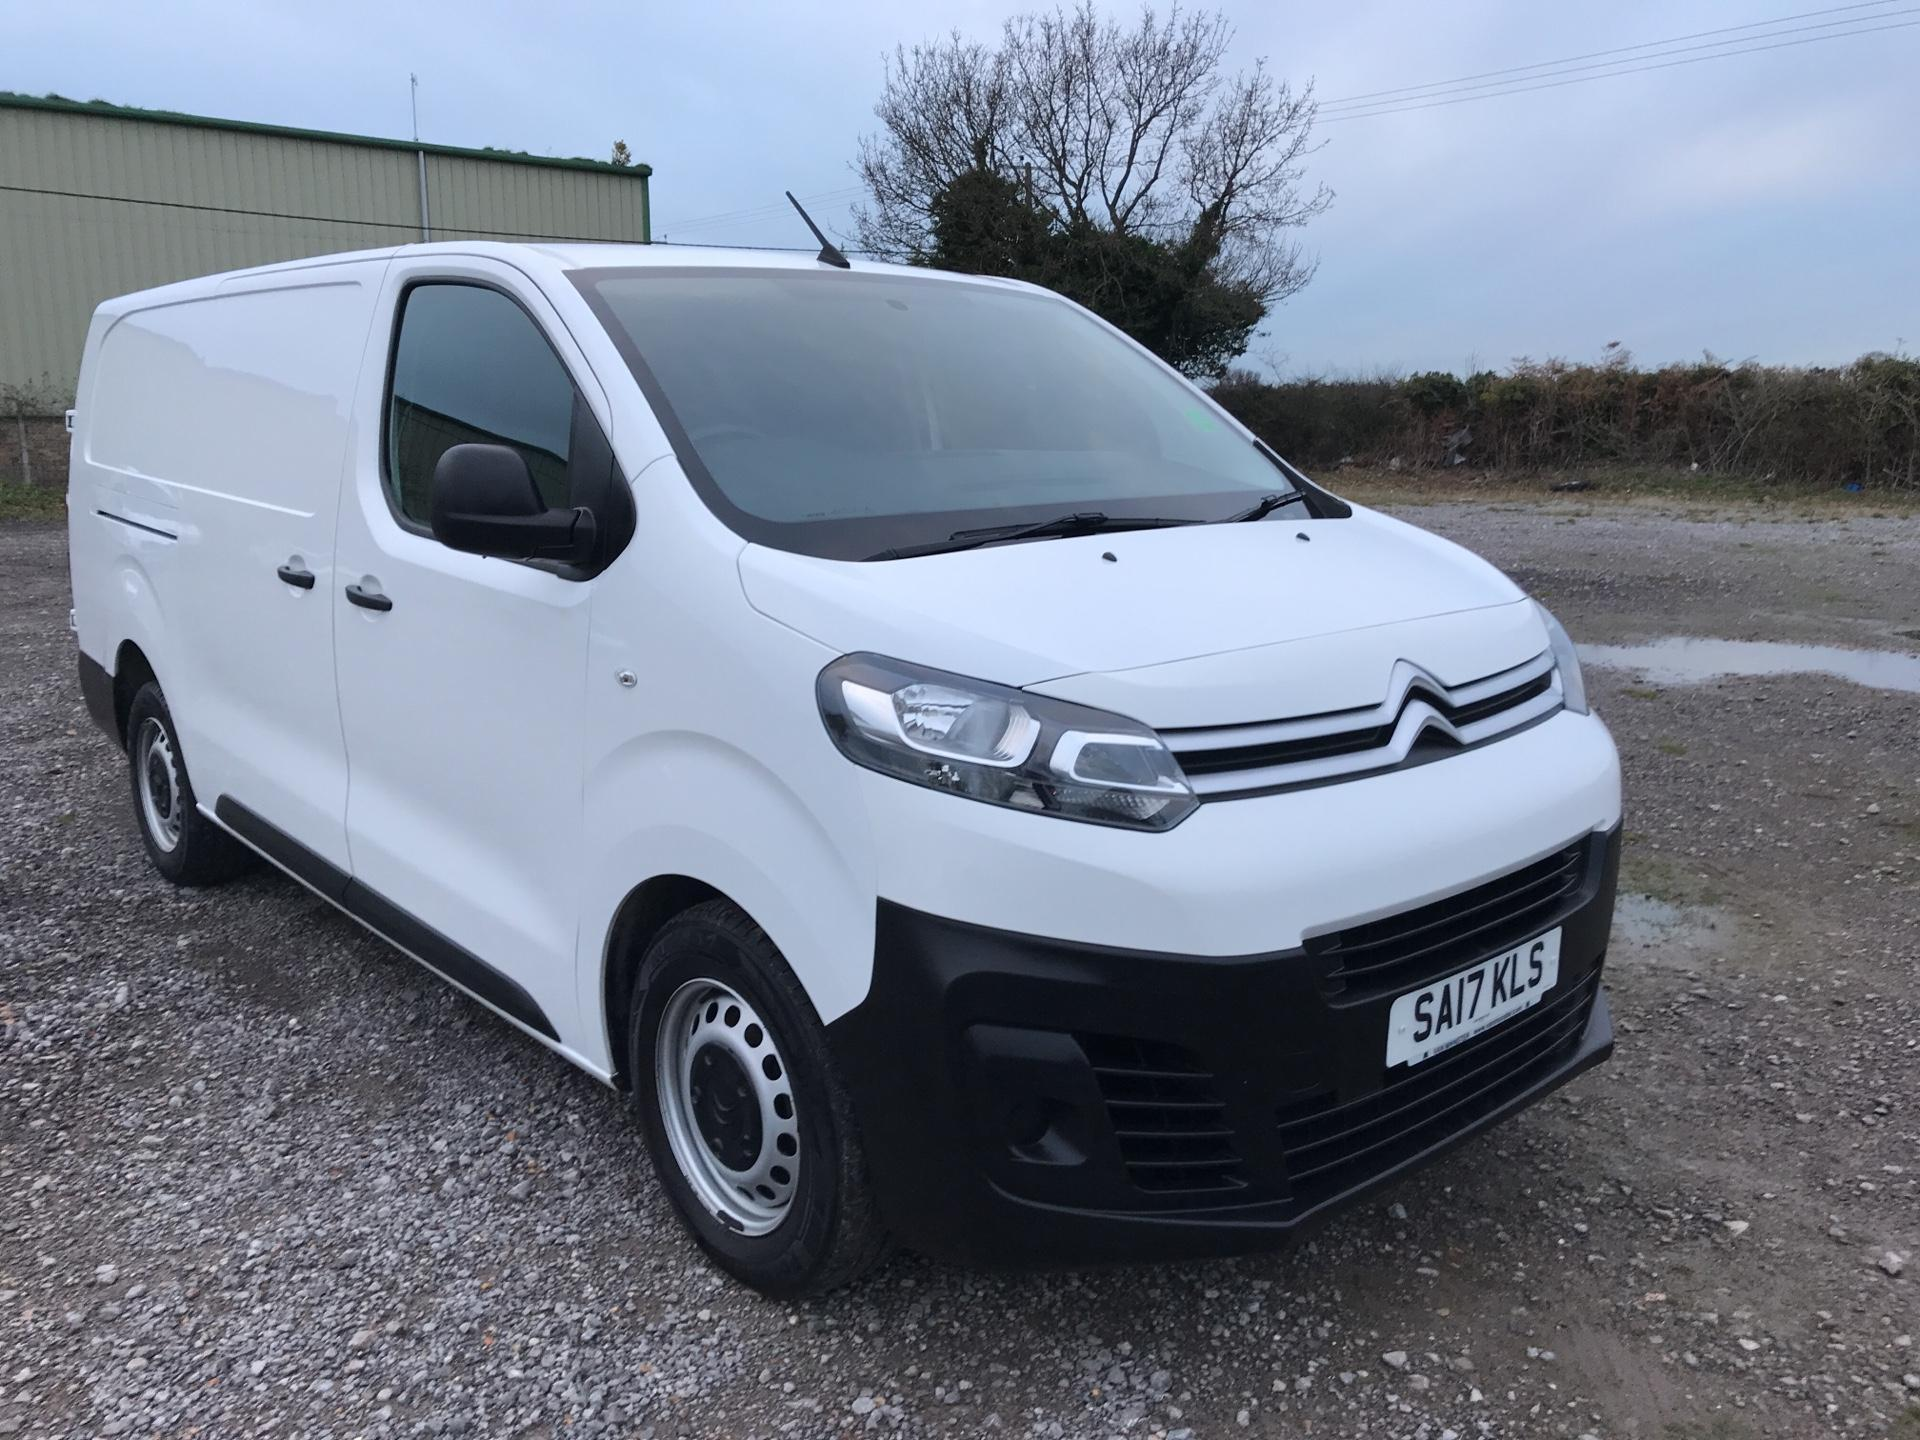 2017 Citroen Dispatch XL DIESEL 1400 2.0 BLUEHDI 120 ENTERPRISE EURO 6 (SA17KLS)